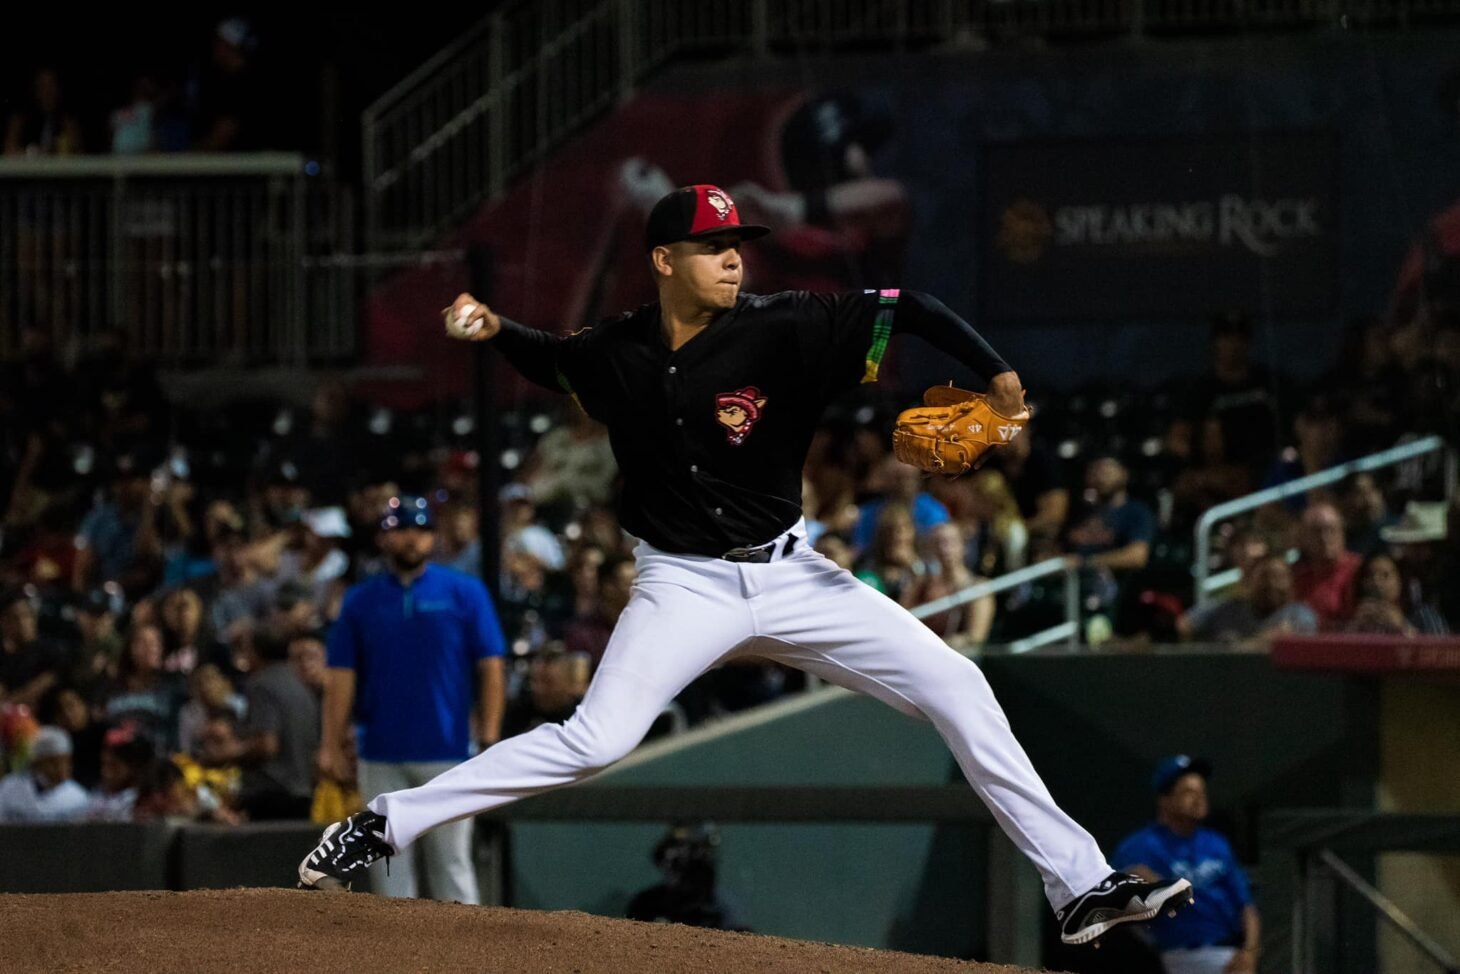 Career night for Adrian Martinez, who had 10 Ks to tie a career high and set a Triple-A career high  |  Photo courtesy EP Chihuahuas